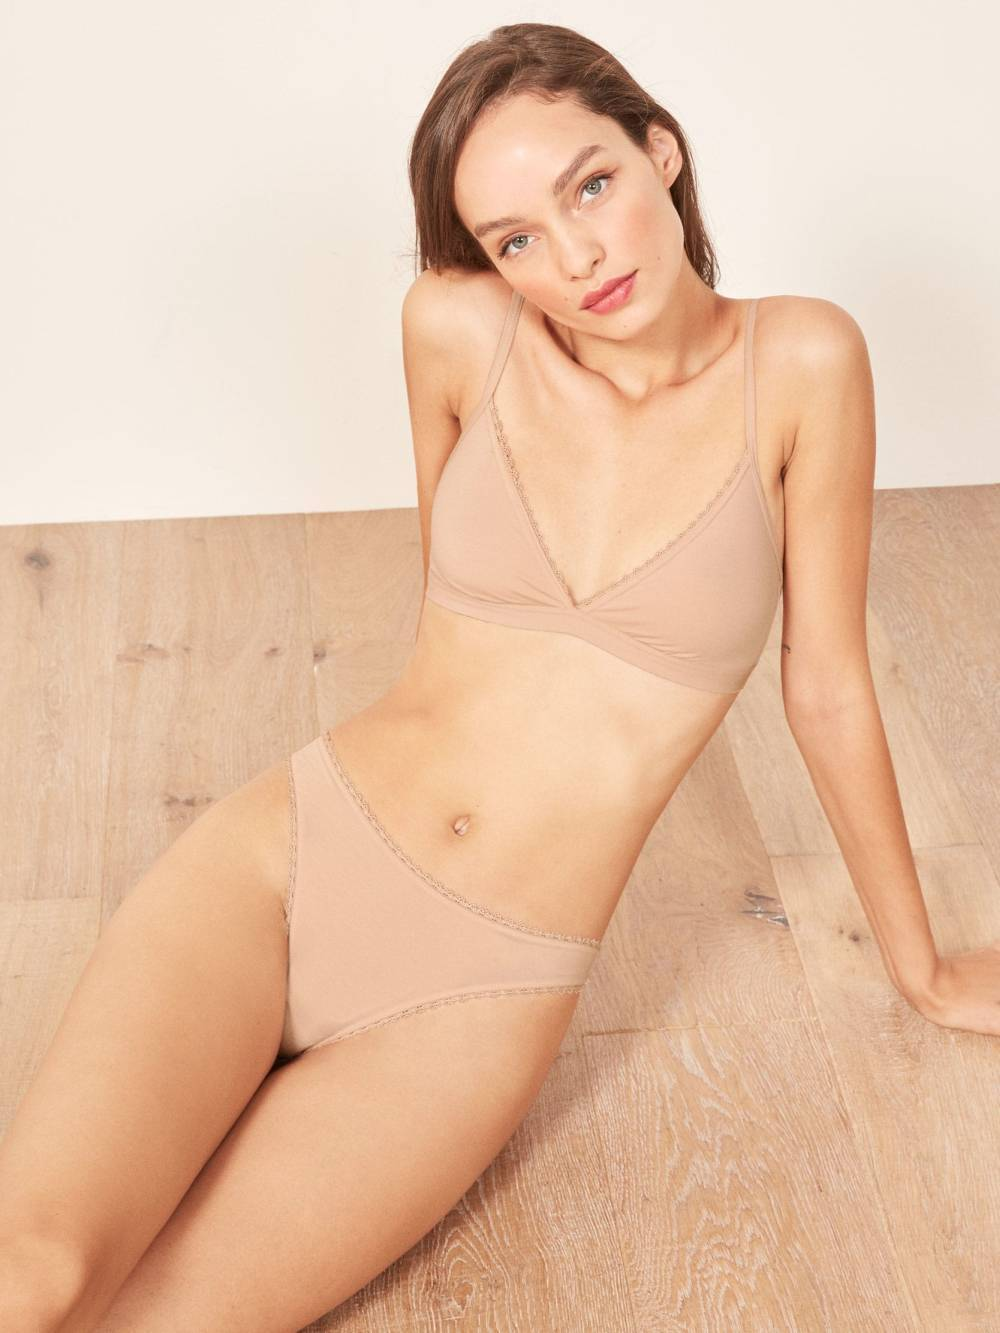 reformation usa made cheap intimates